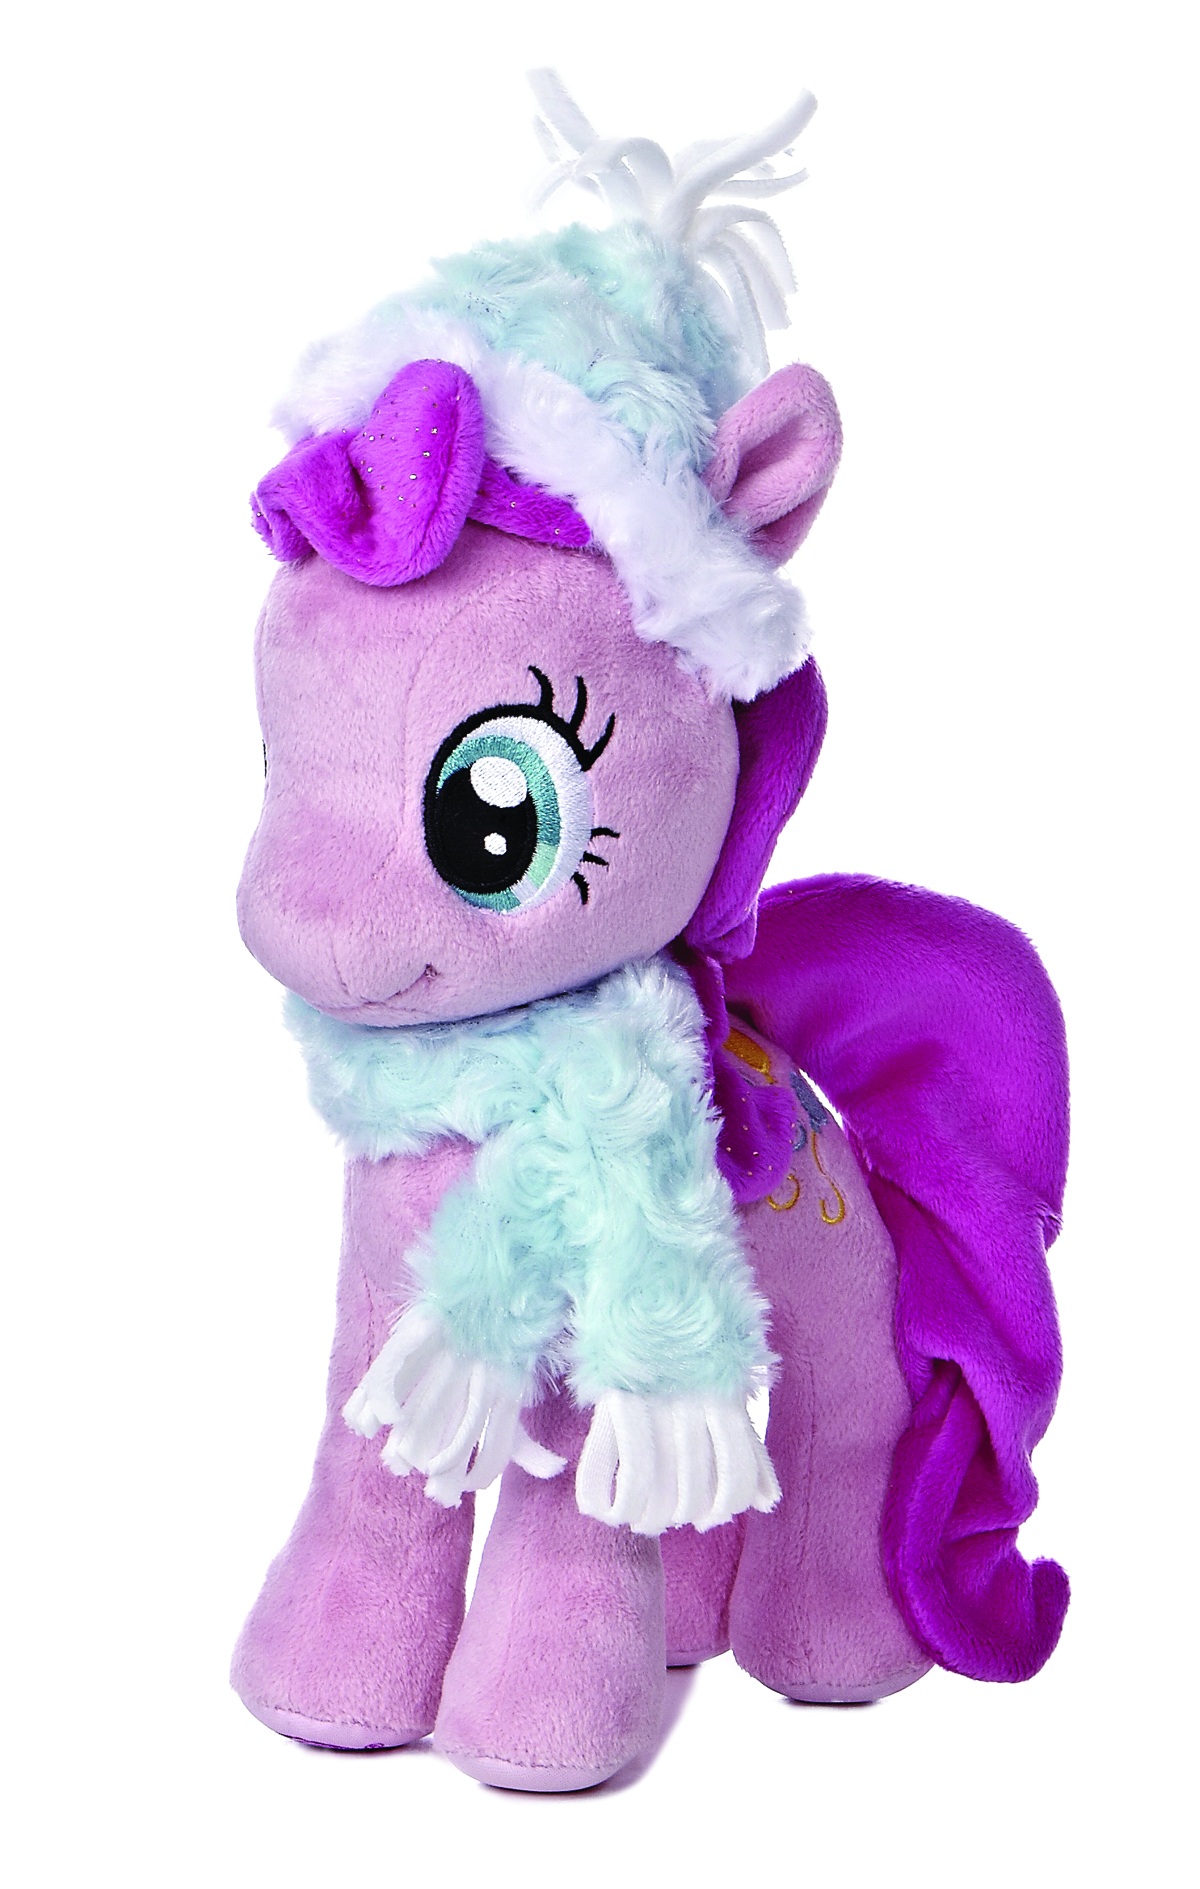 AURORA MLP PINKIE PIE FUZZY HAT & SCARF 10IN PLUSH